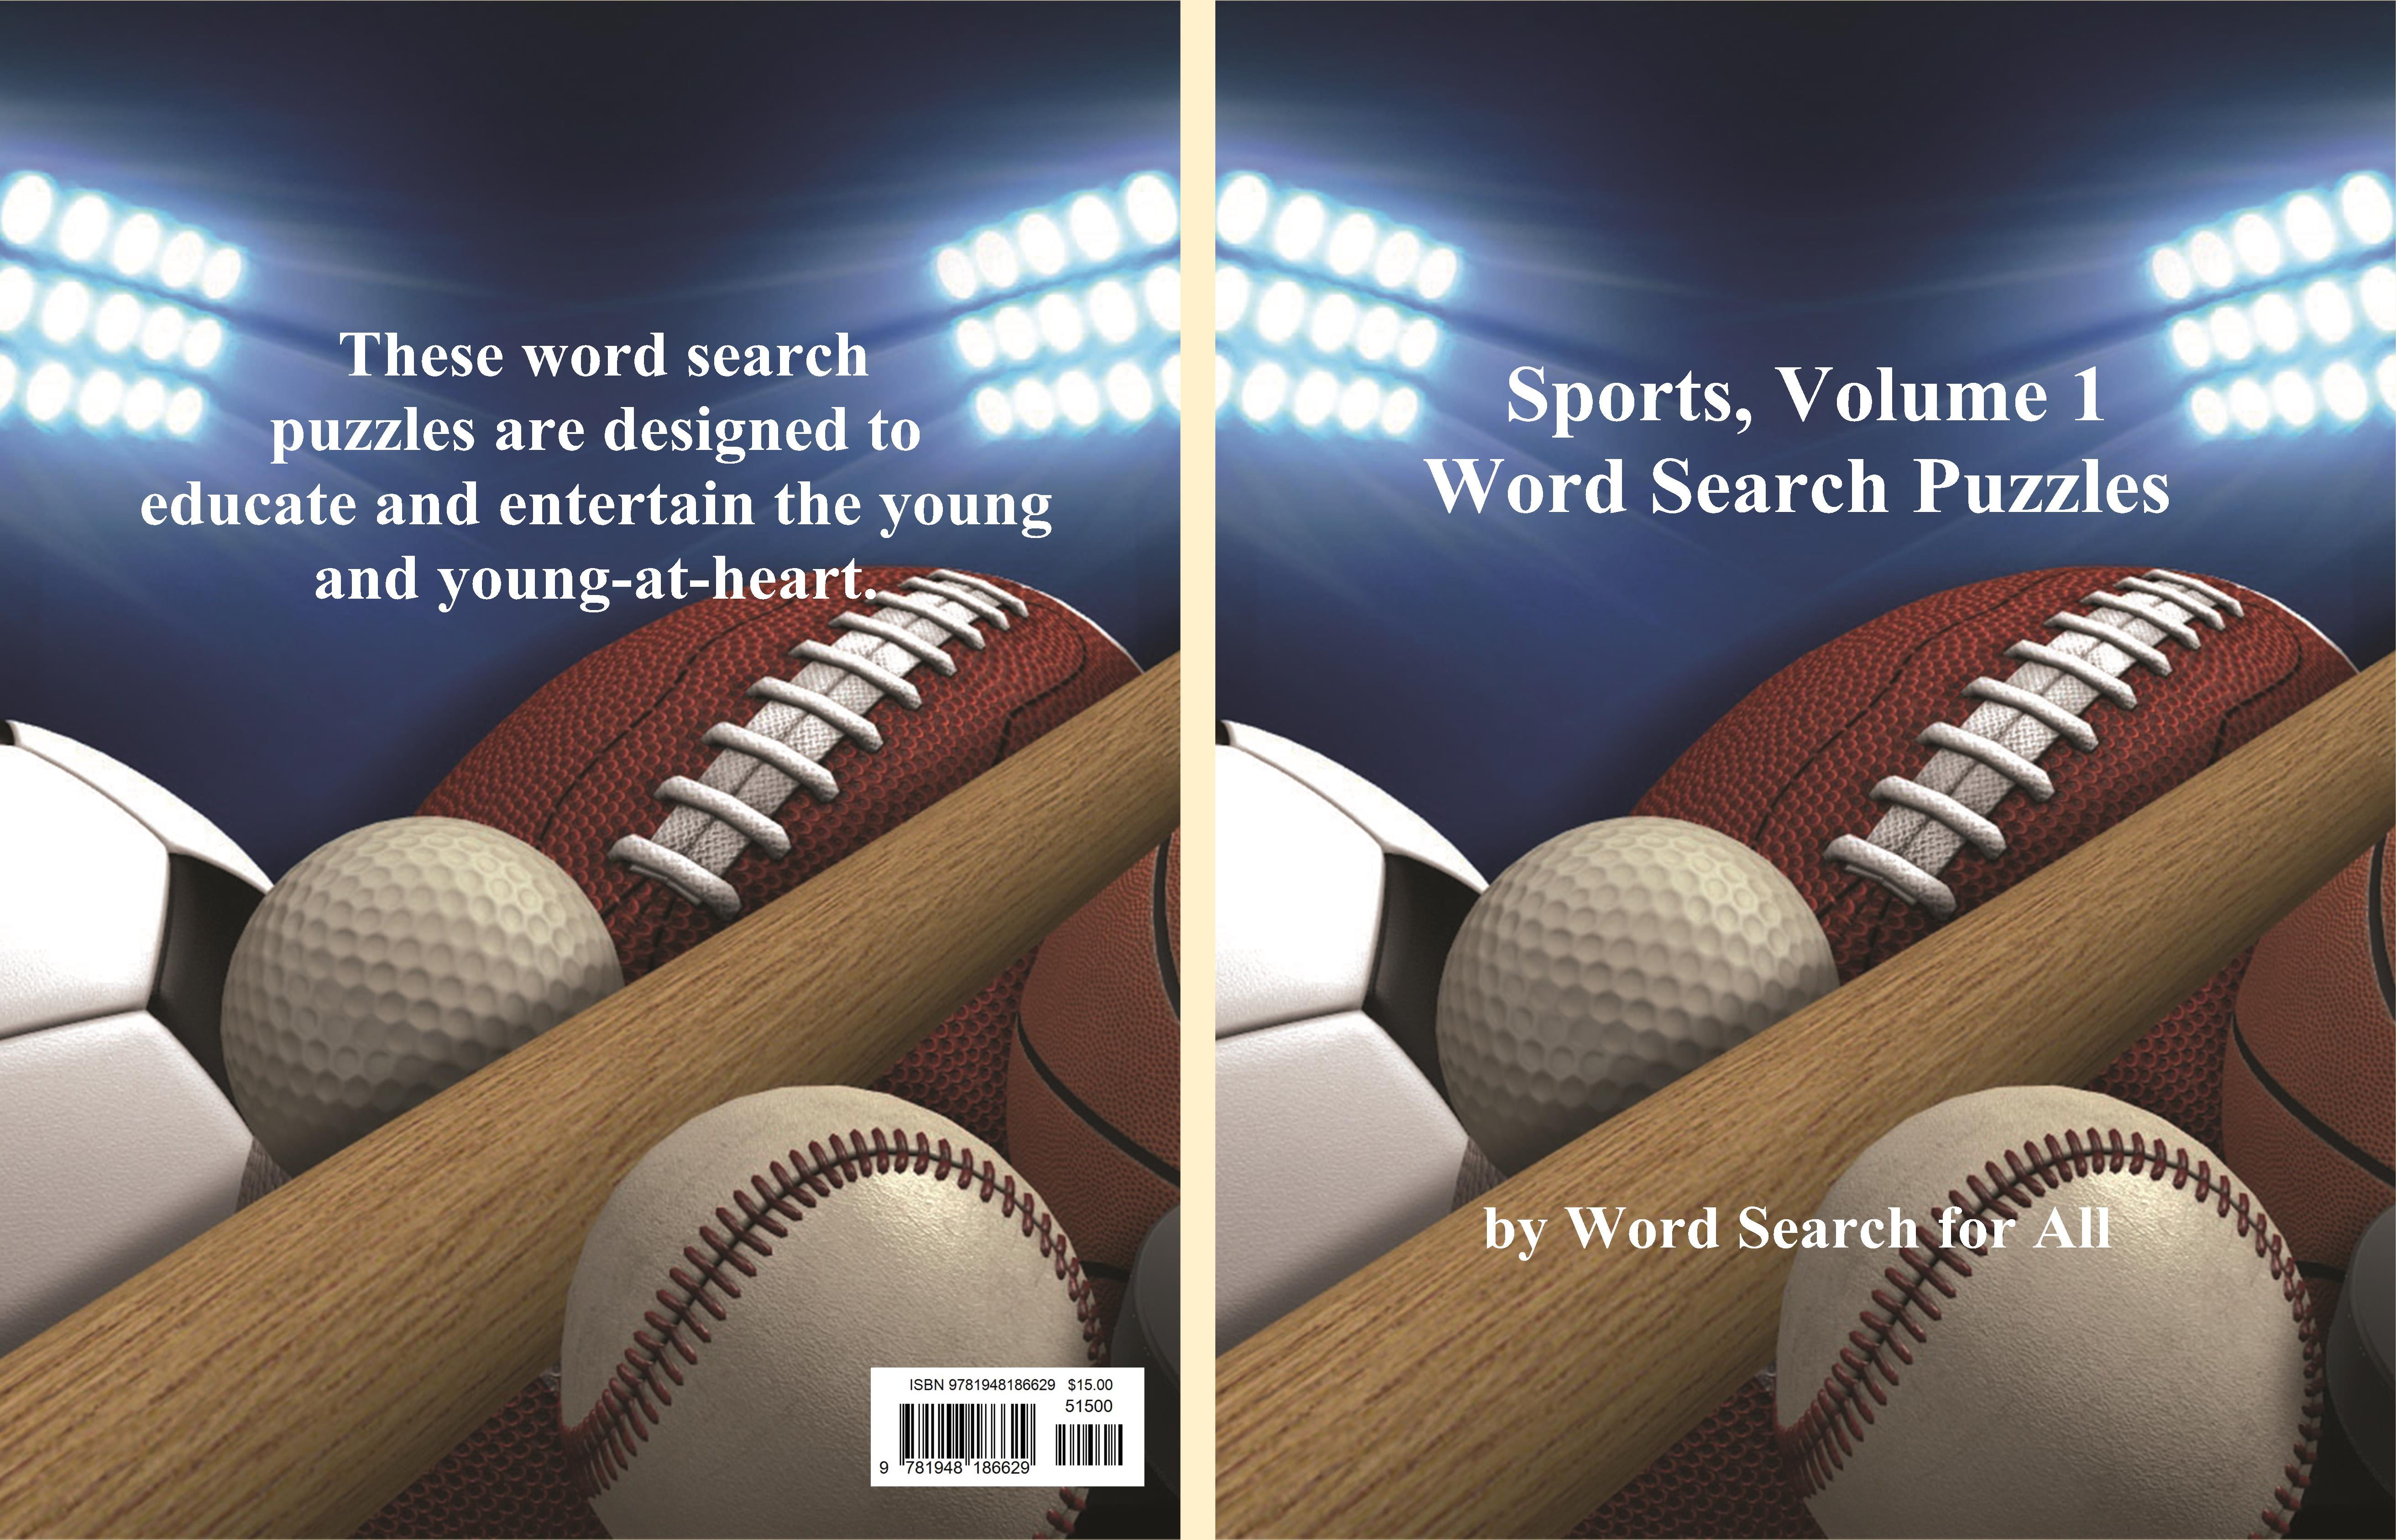 Sports, Volume 1 Word Search Puzzles cover image